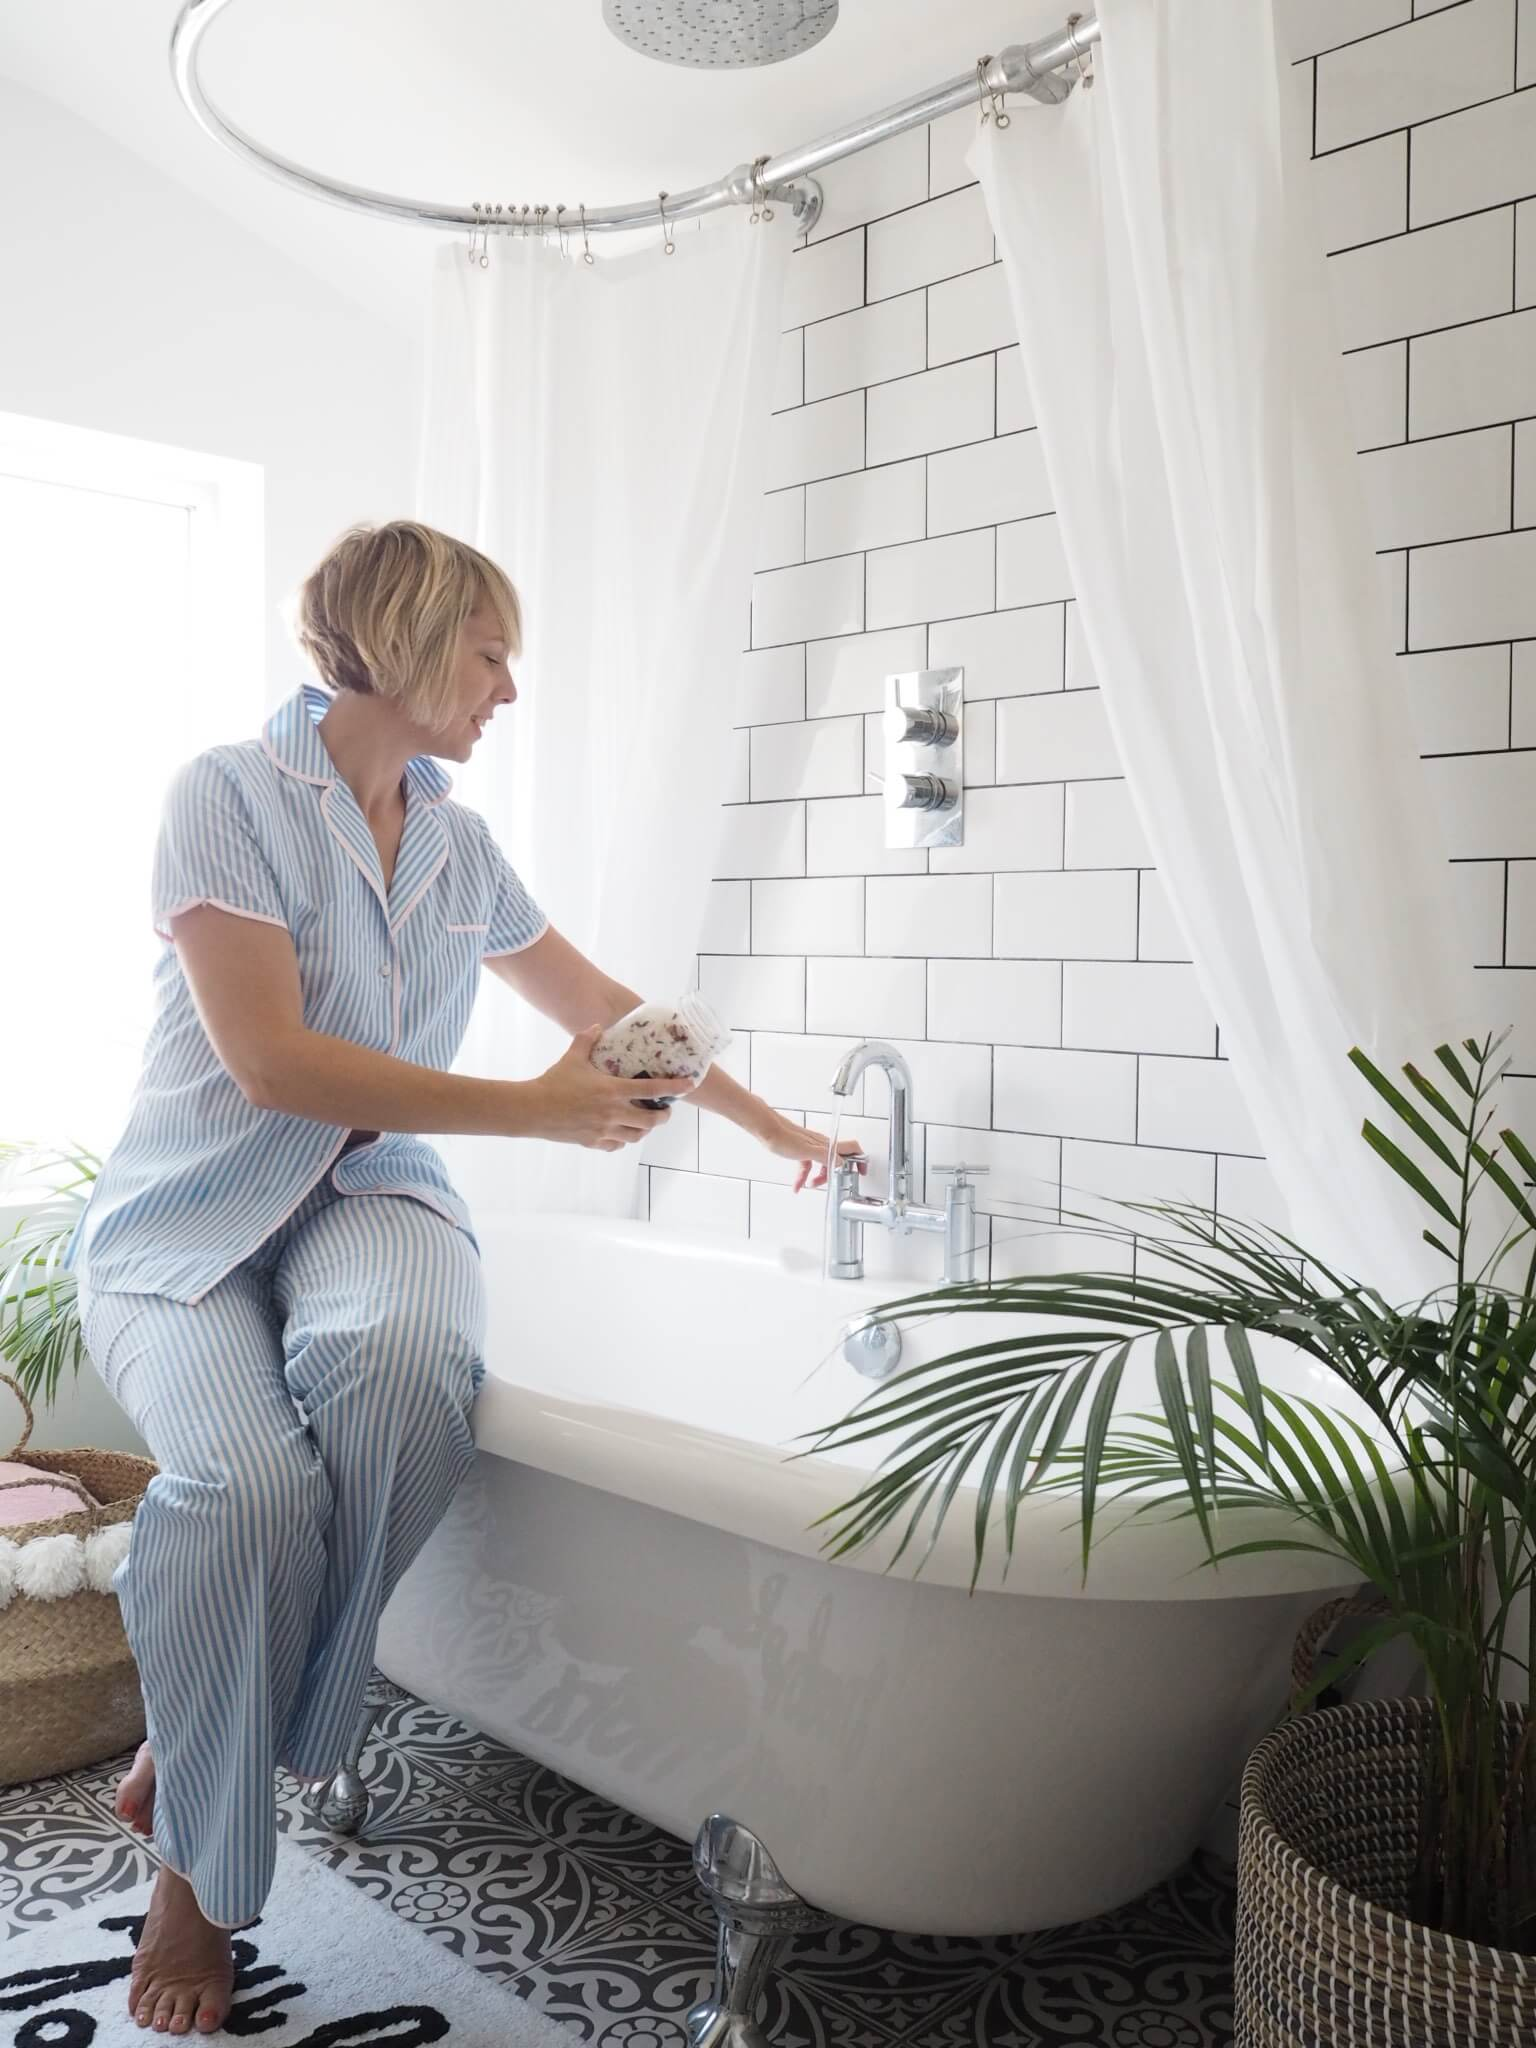 Swell Styling Ideas For Your Bathroom Welovehome Interior Design Ideas Jittwwsoteloinfo